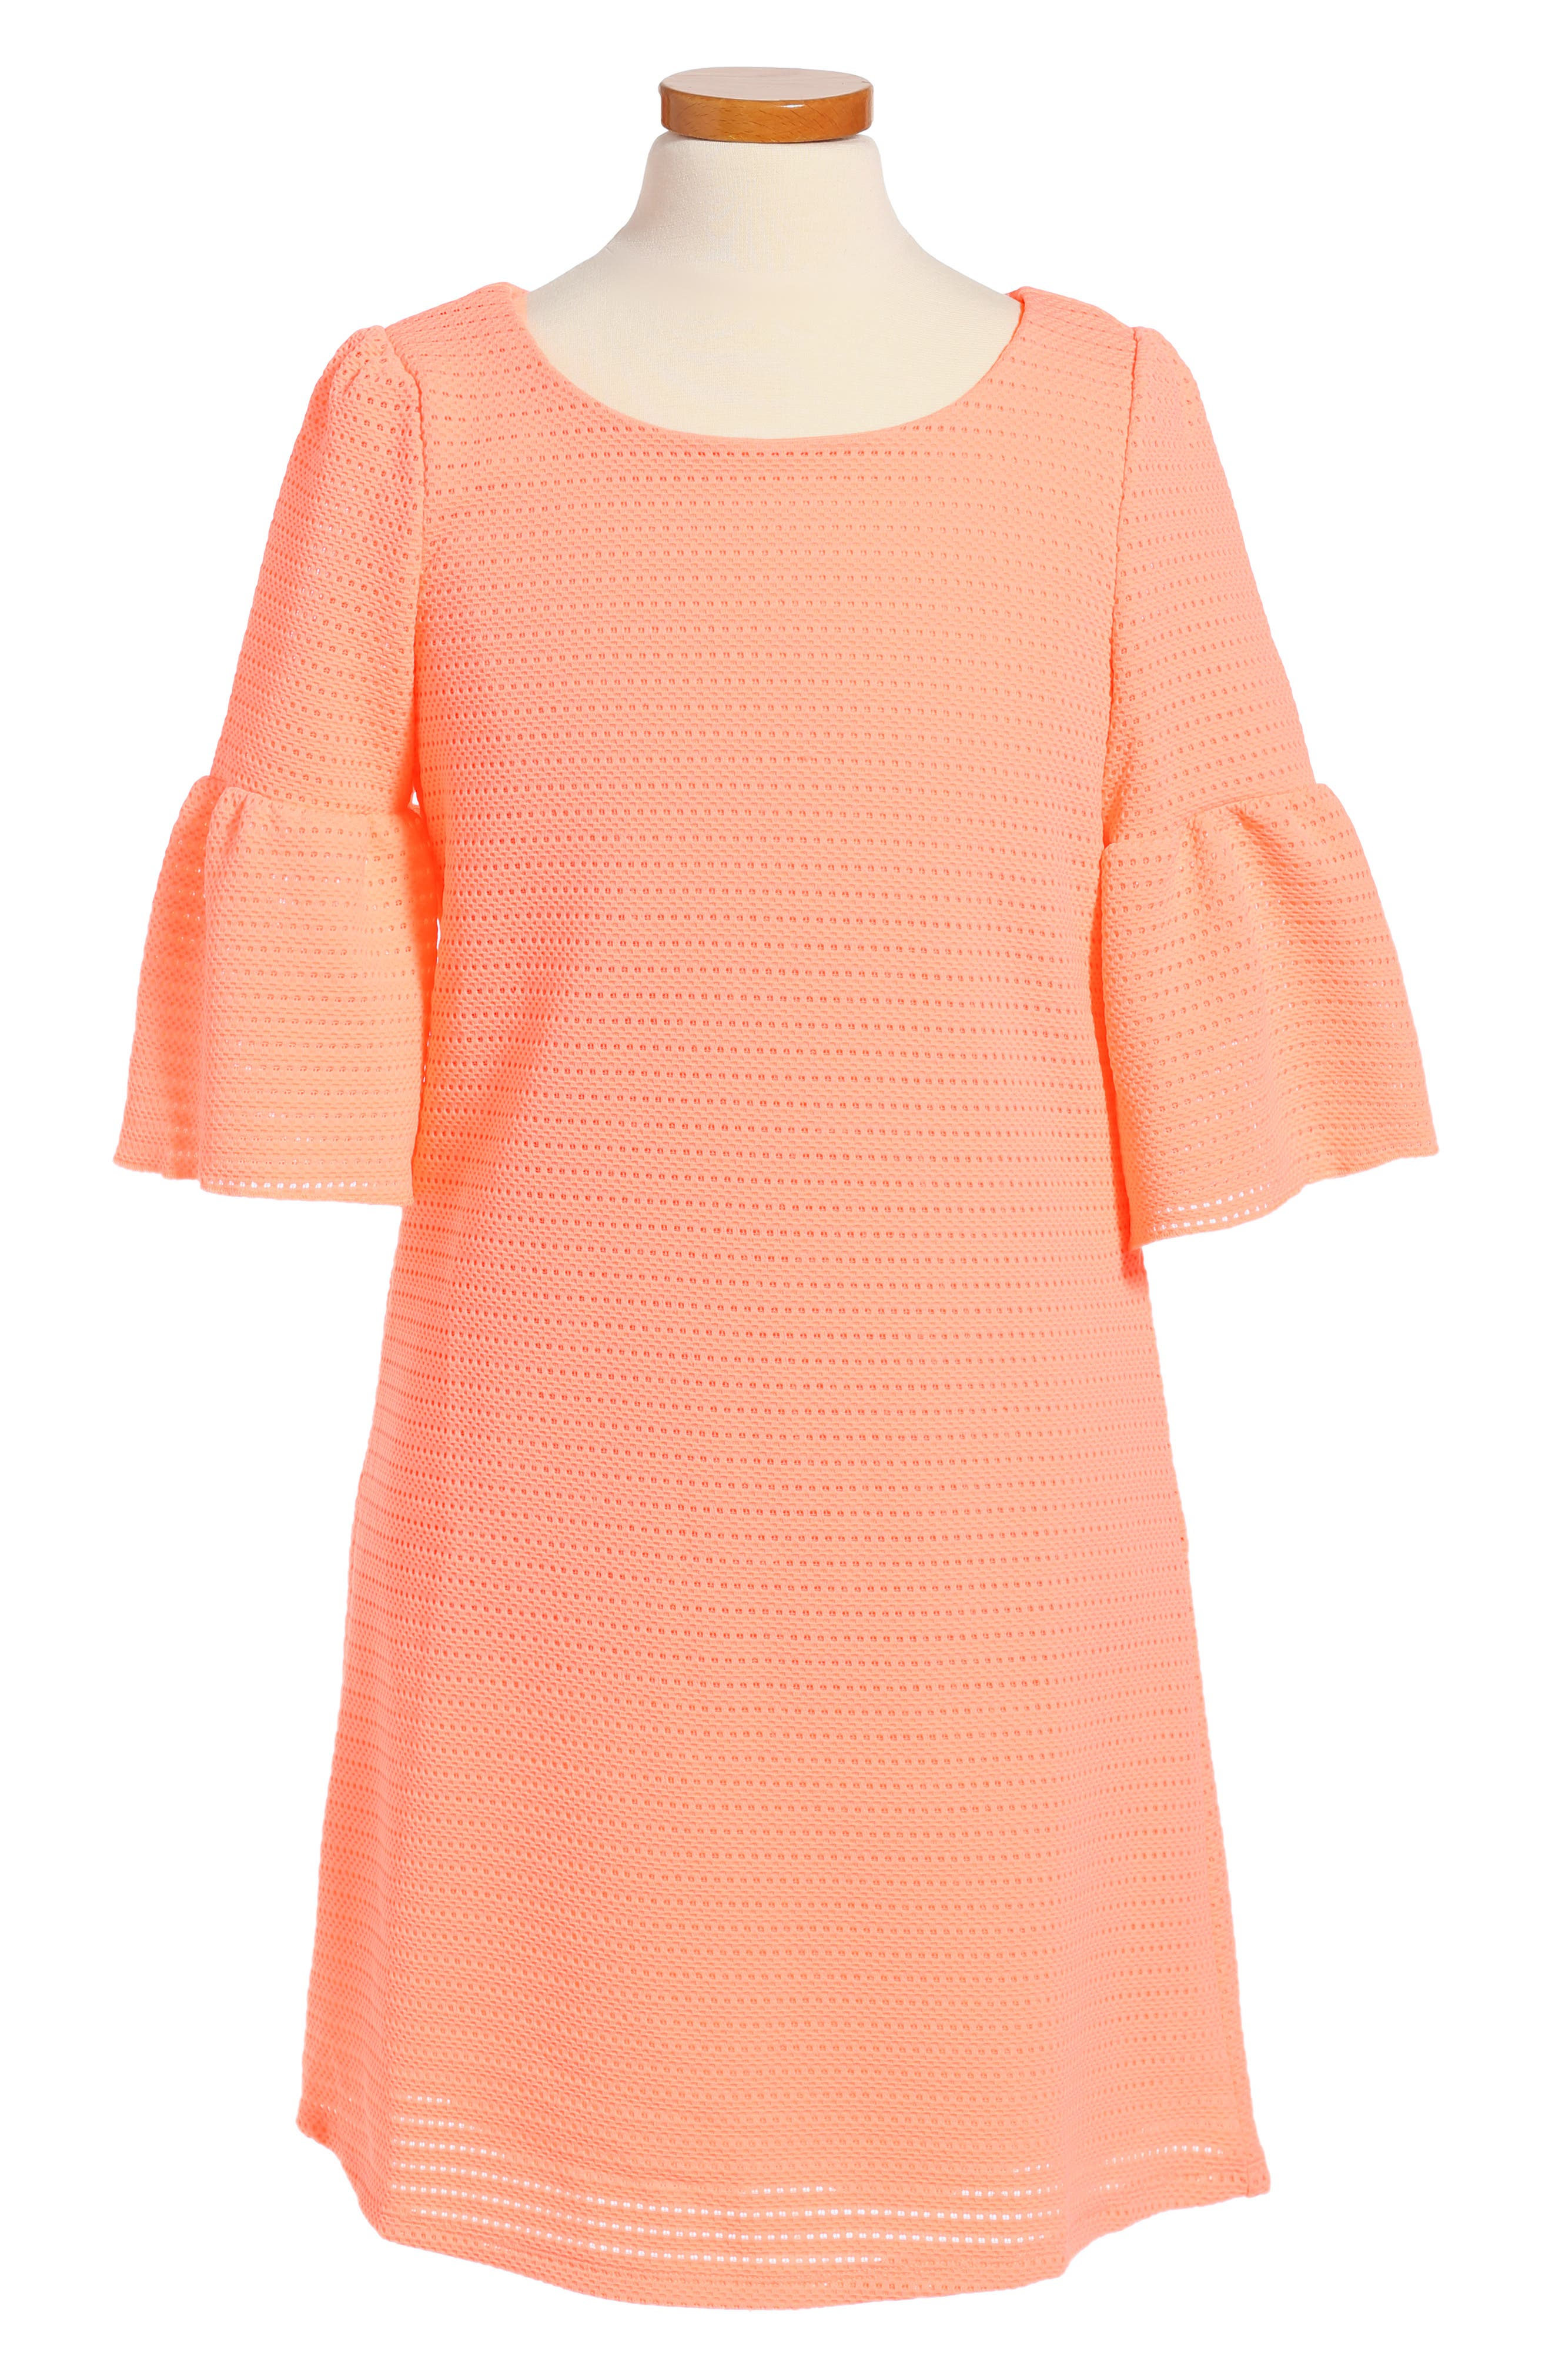 Bell Sleeve Dress,                         Main,                         color, 950